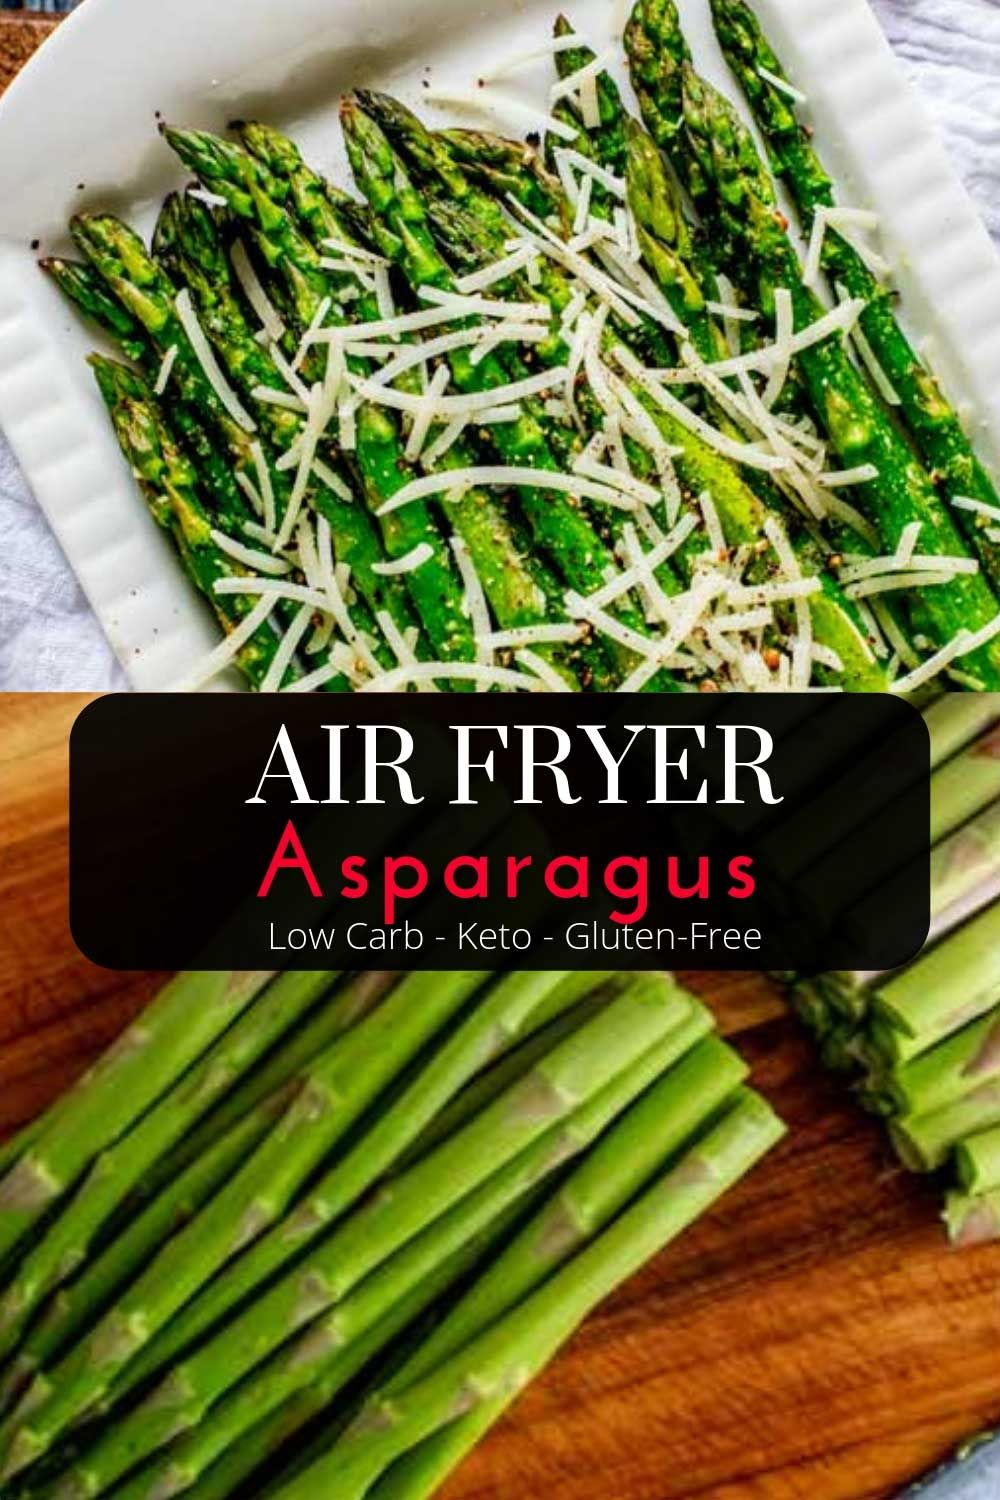 Keto Asparagus Recipe Food Recipes Side Dishes Easy